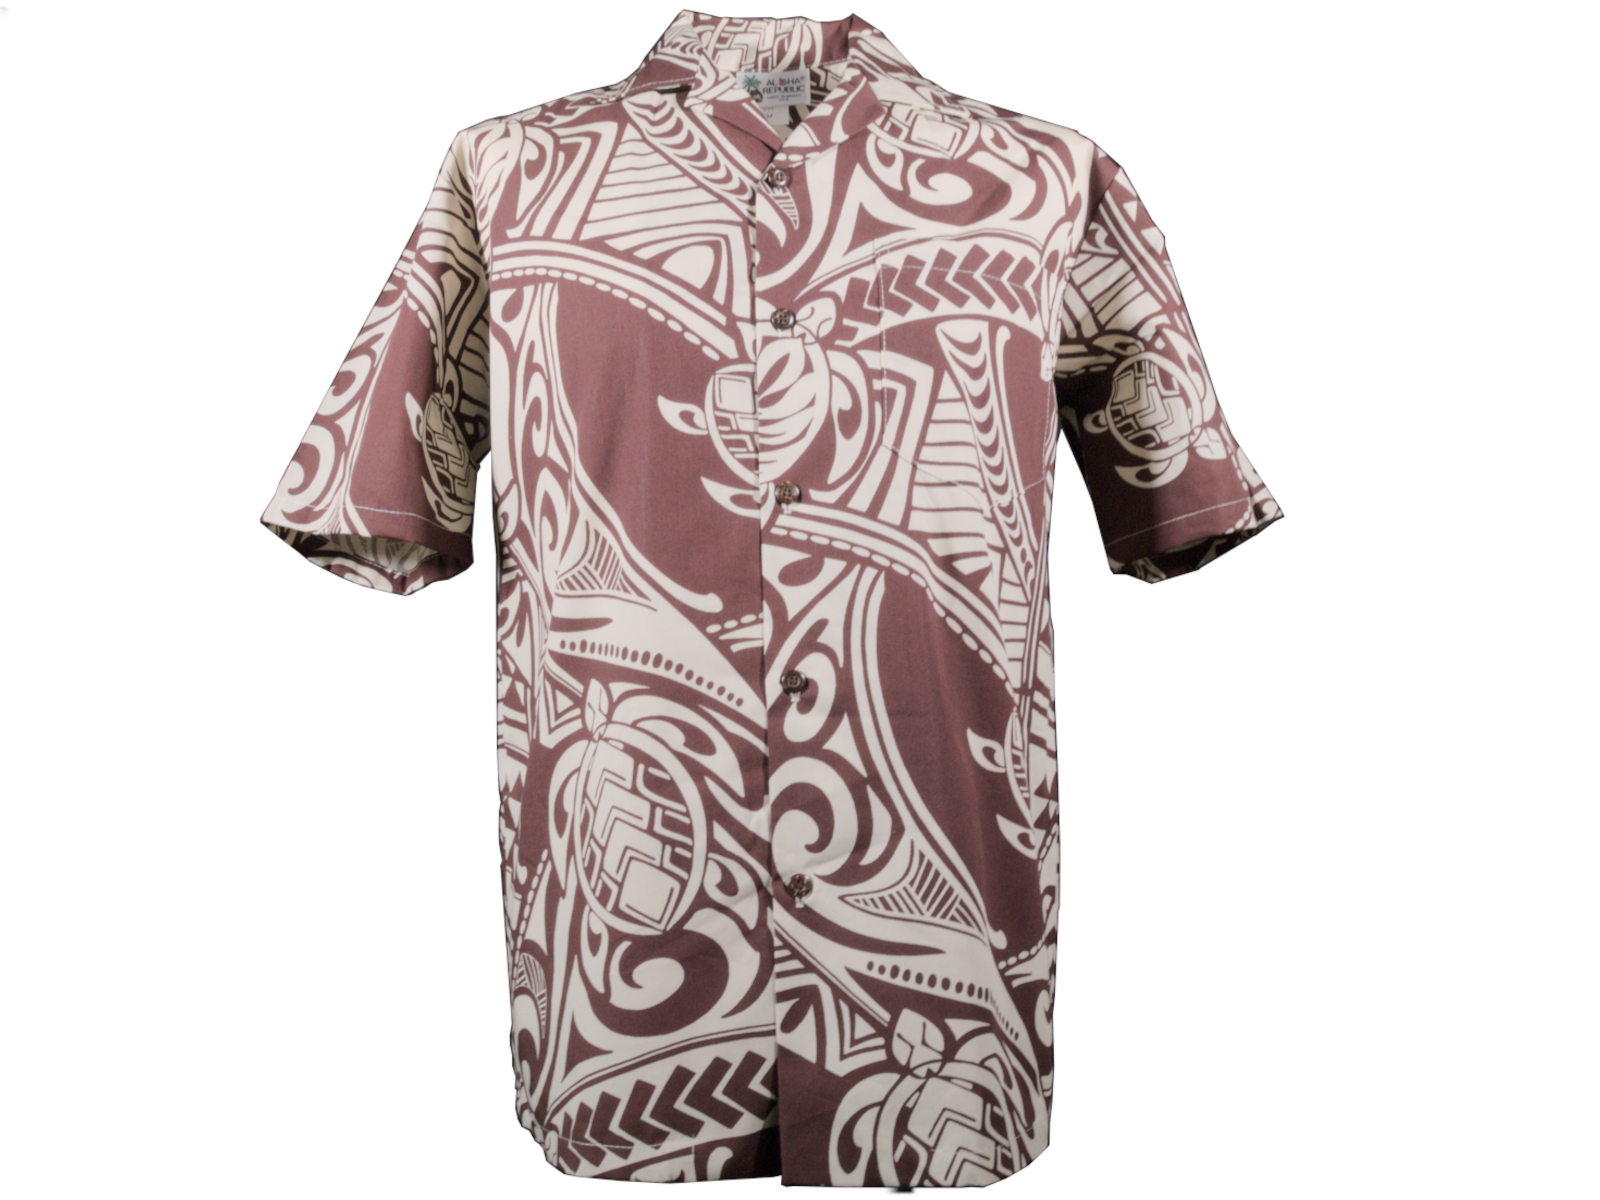 Original Hawaiihemd -Mighty Honu-